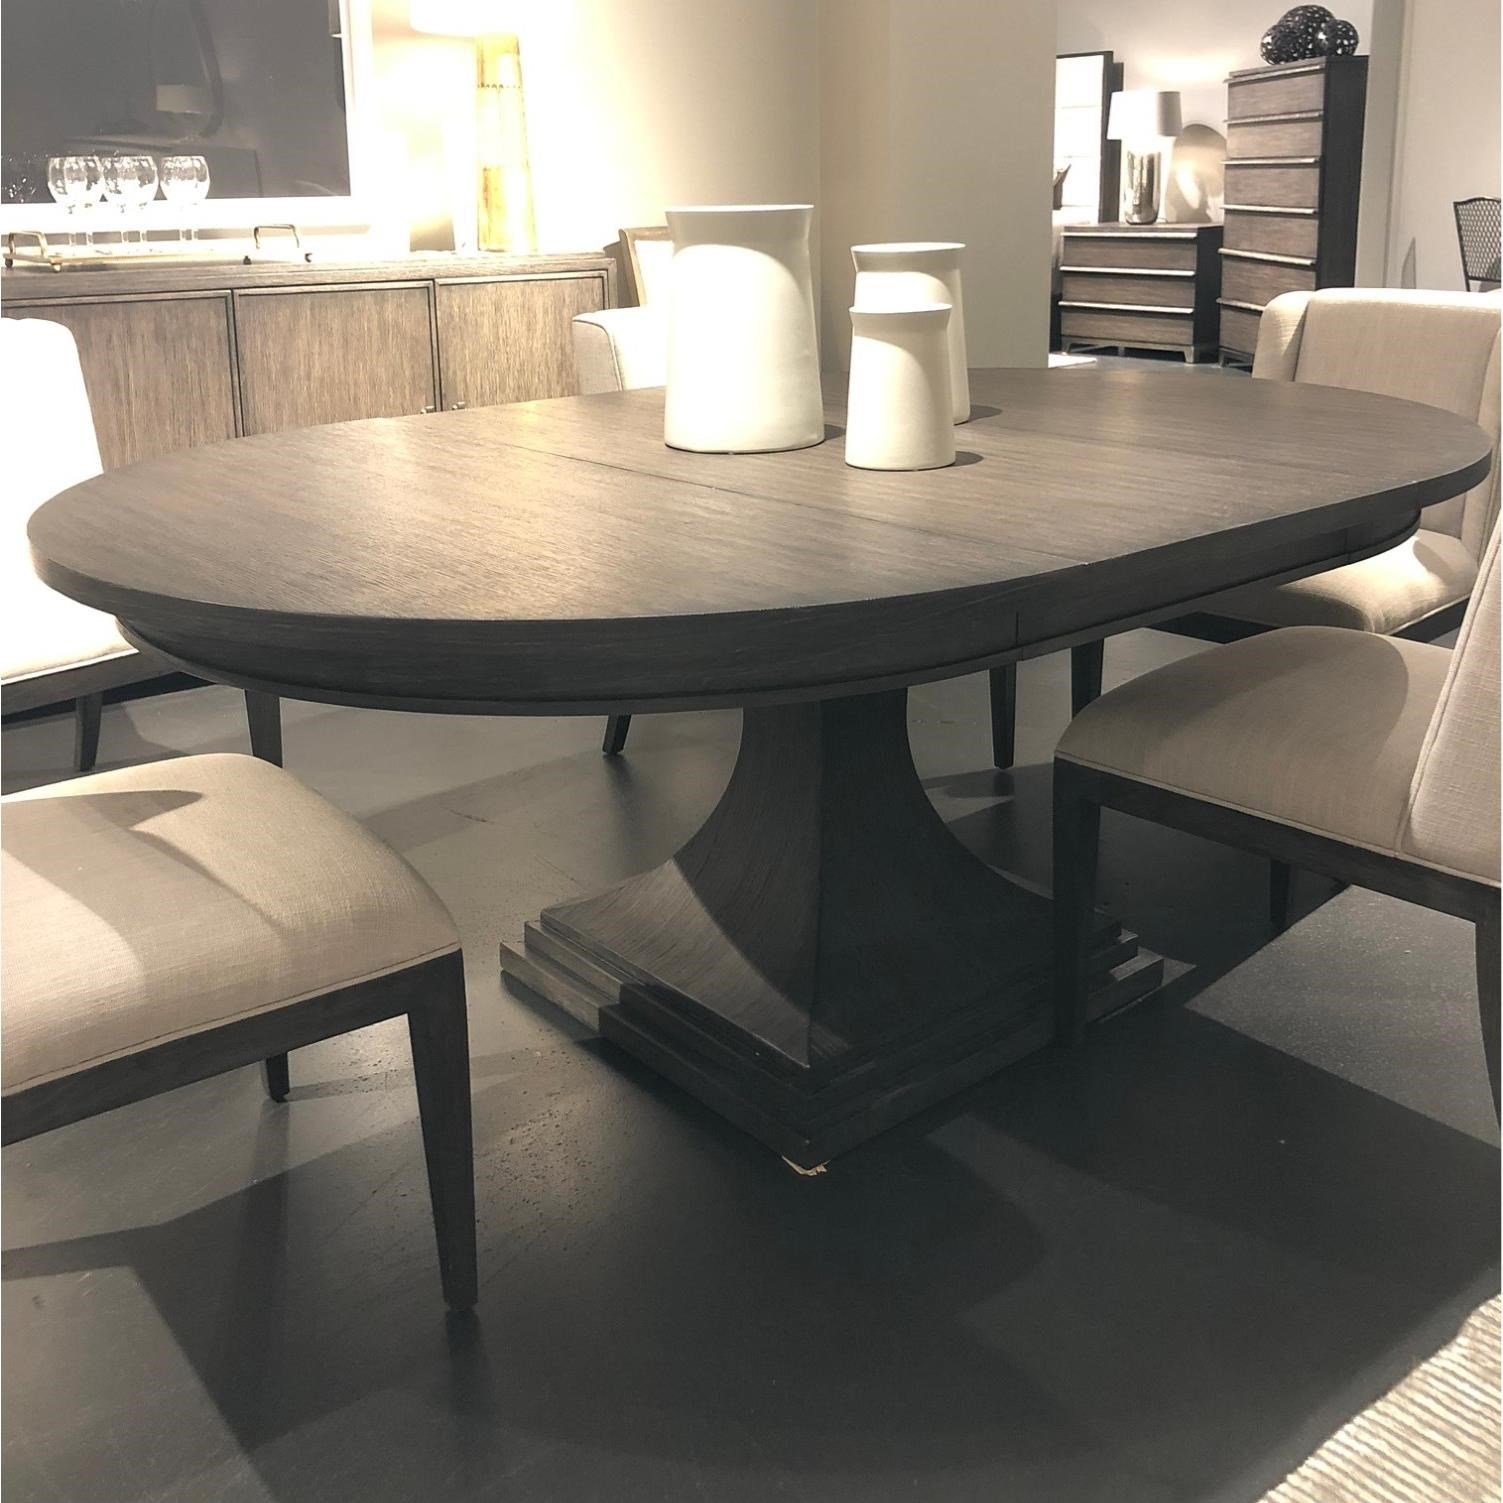 Stanley Furniture Horizon 54 Round Dining Table With Leaf Dream Home Interiors Dining Tables